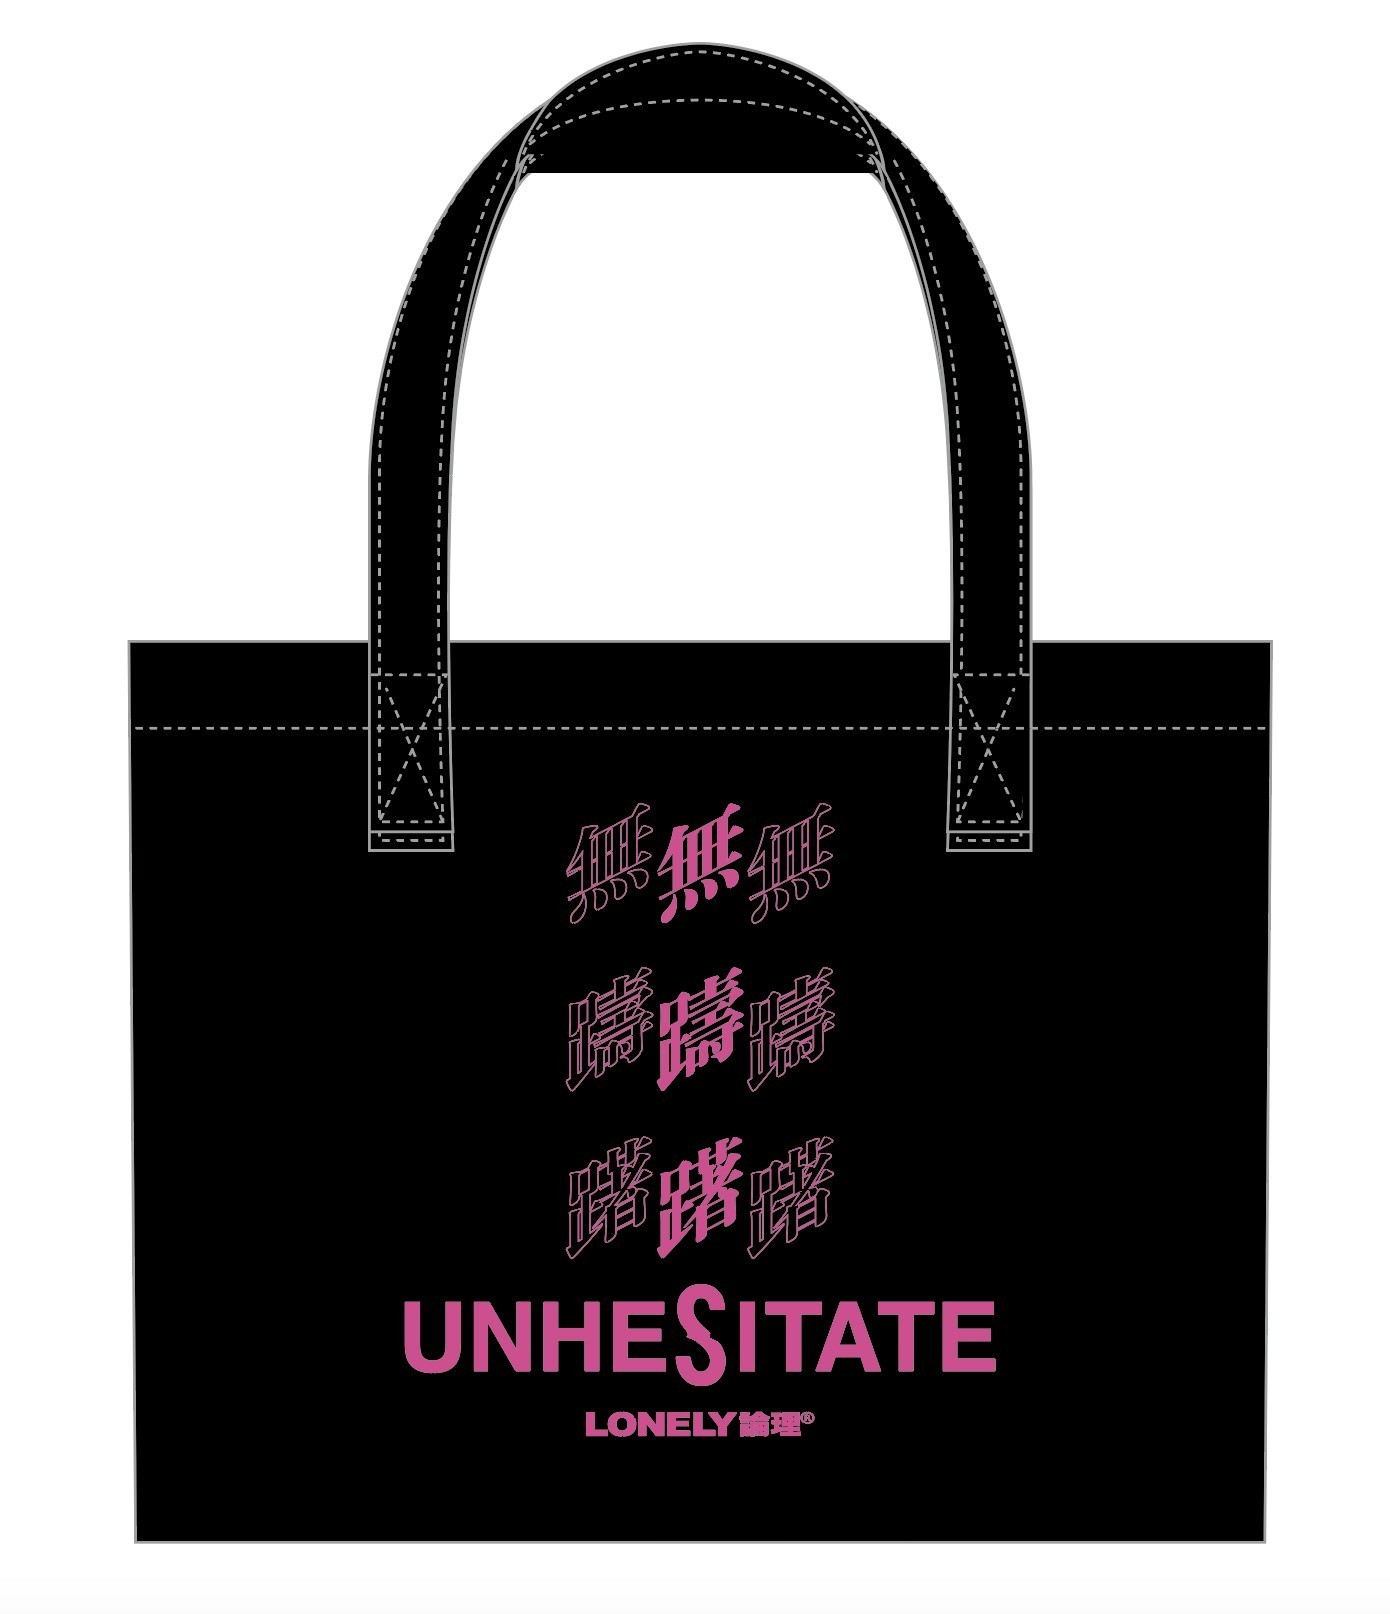 TOTE BAG /LONELY論理COLLABORATION